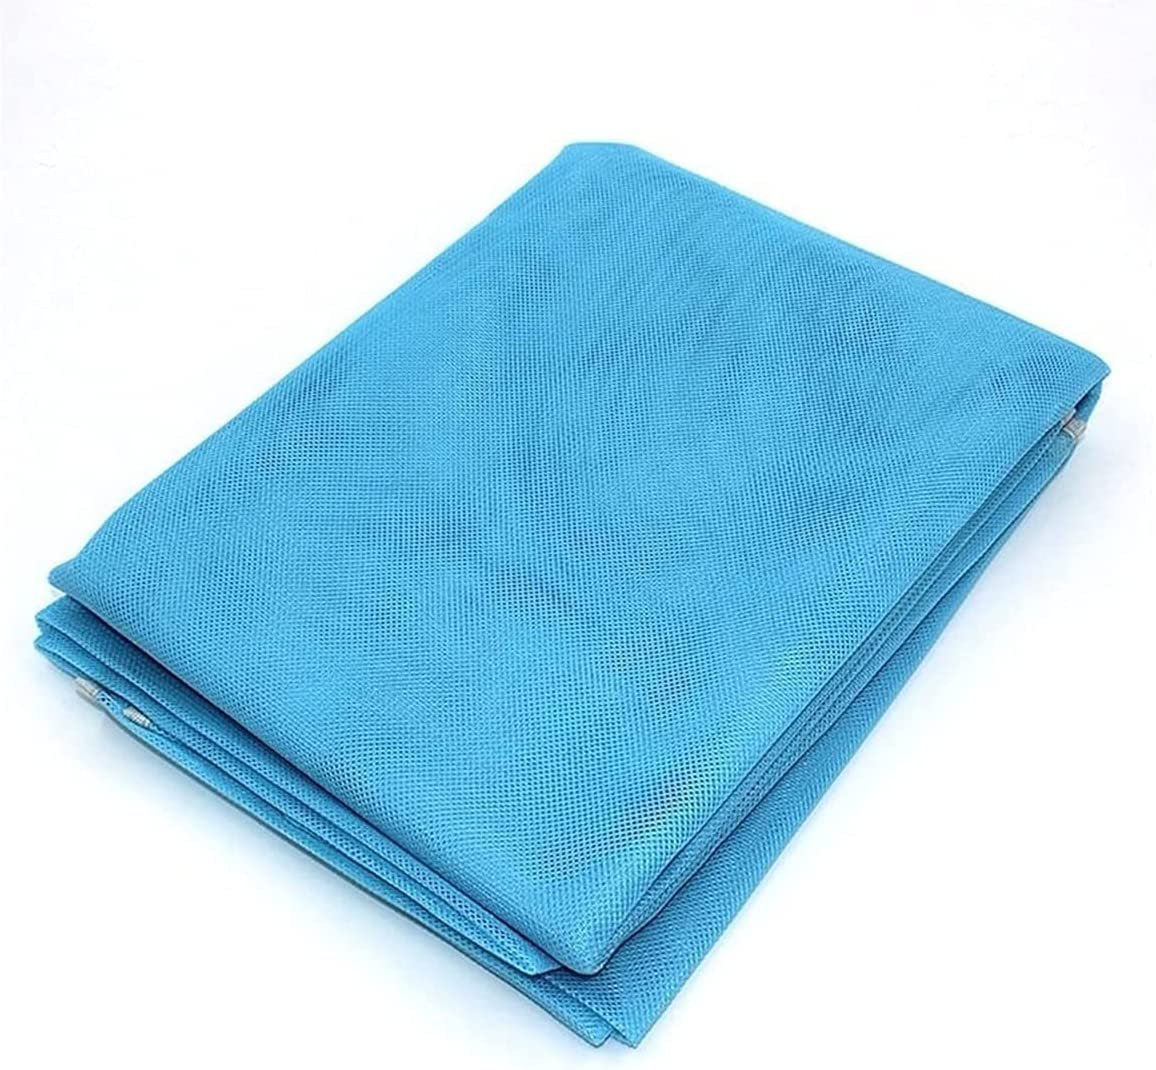 WGLL Camping Beach Mat Outdoor Sand Travel Waterproof Matt Super sale period Limited Special Price limited